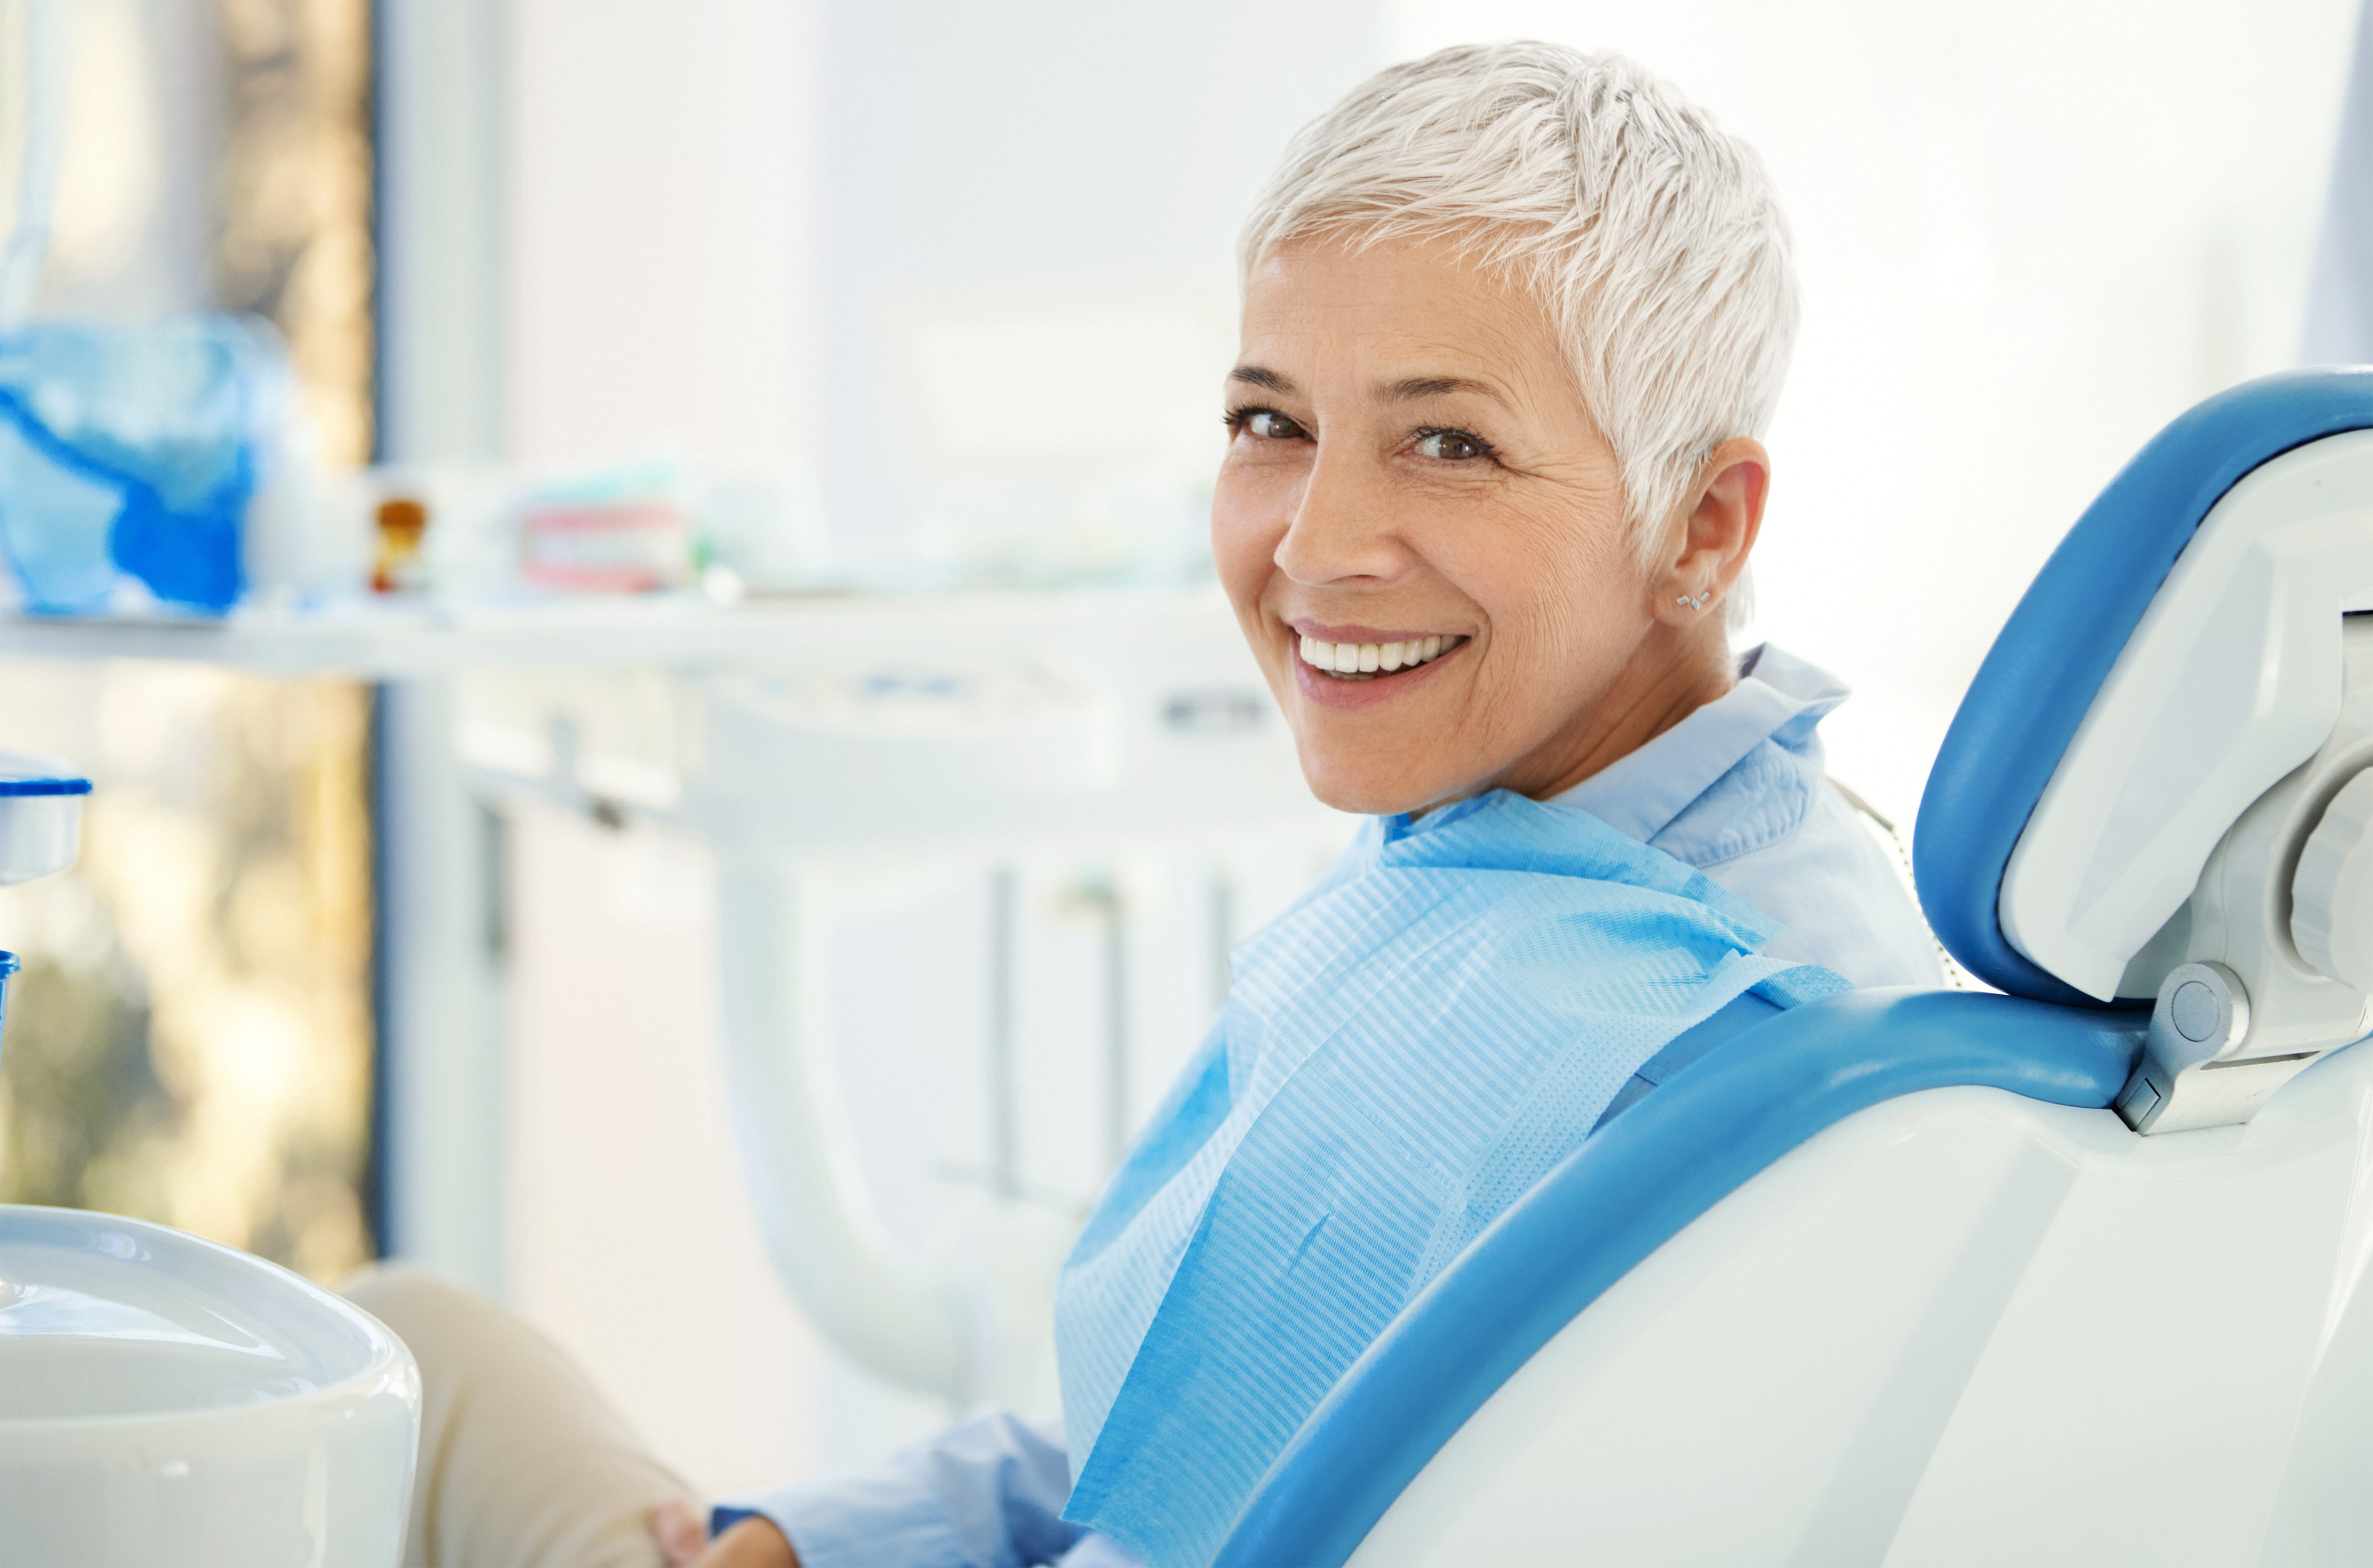 Comparing Dental Implant Systems for Tooth Replacement